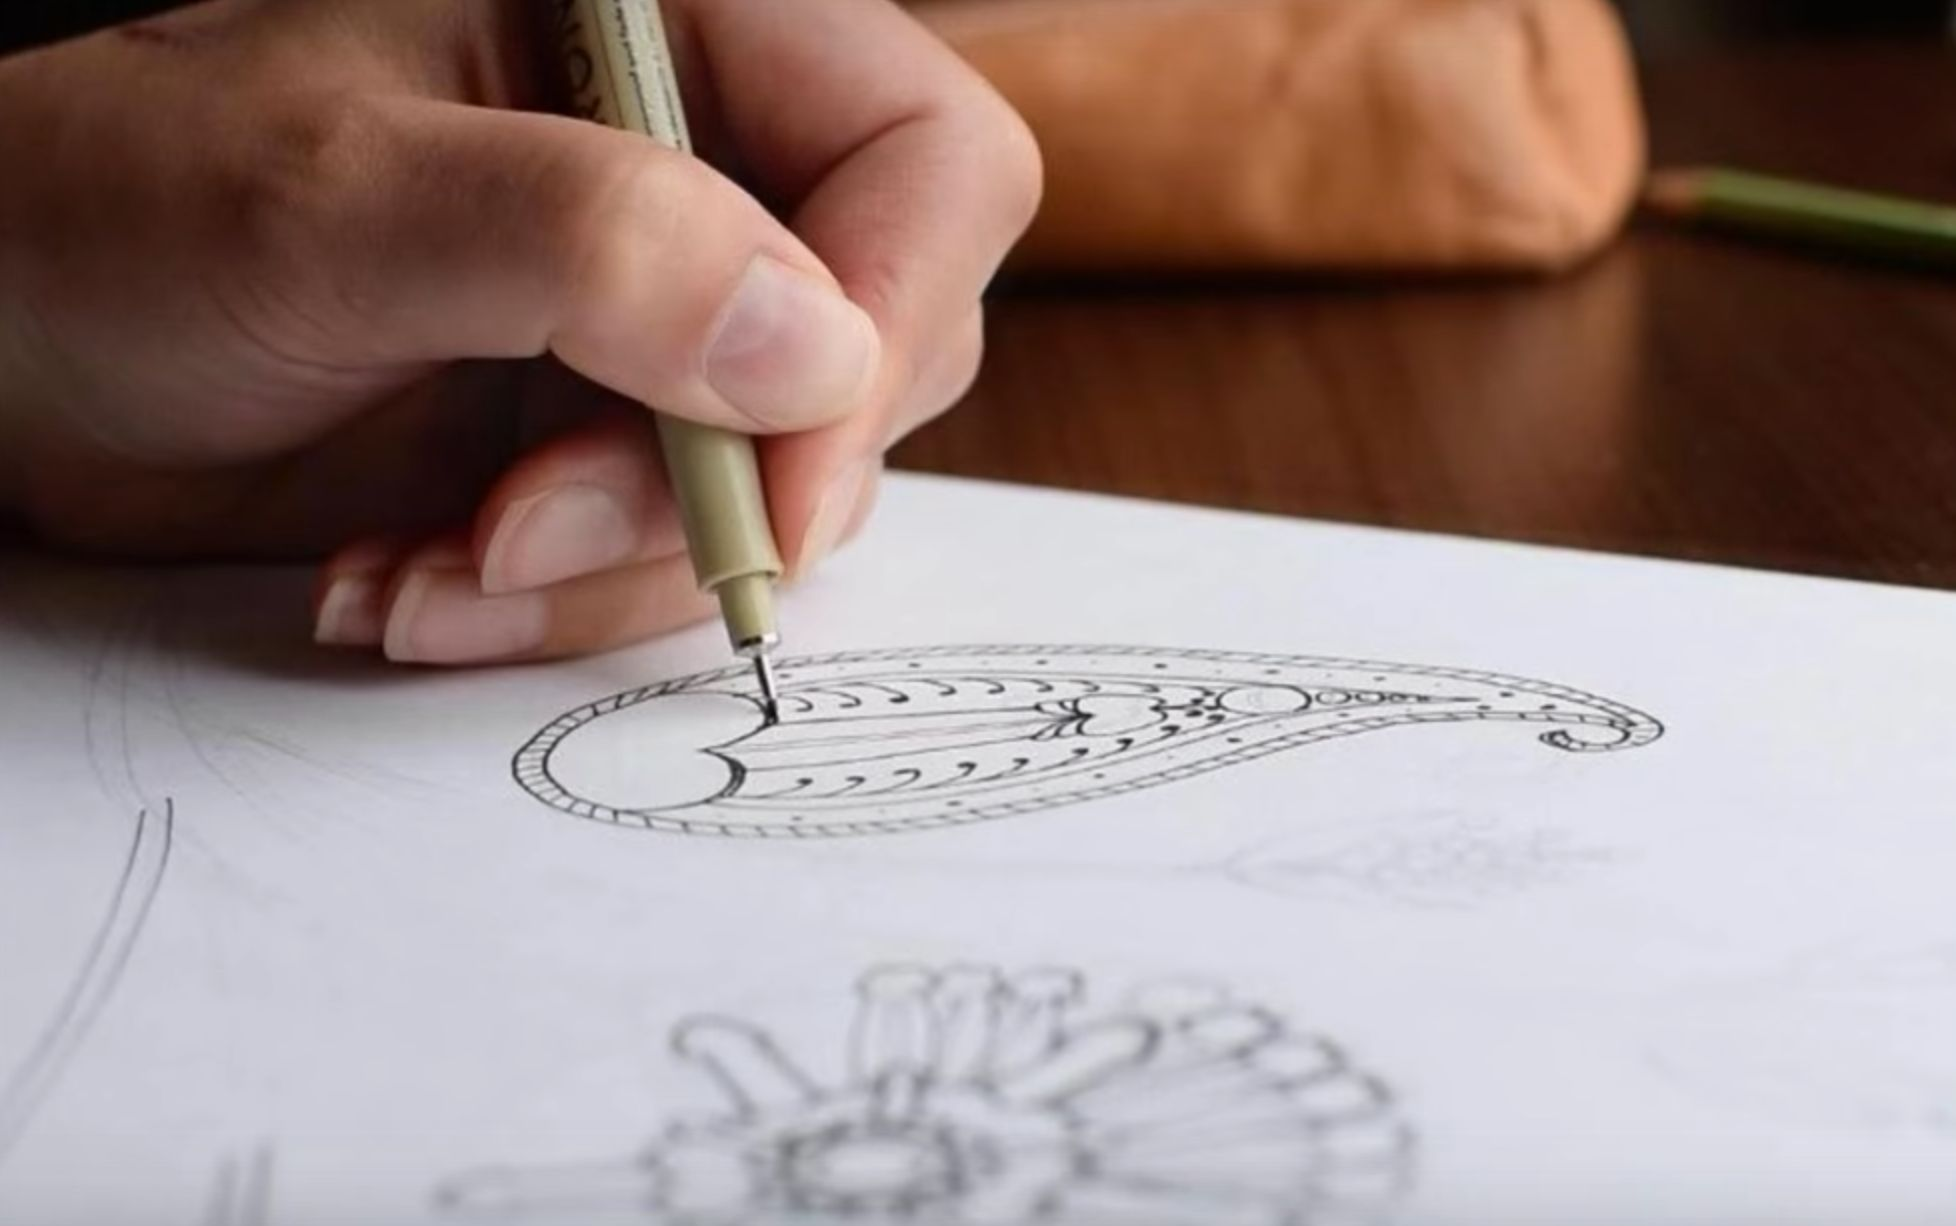 Penis-Themed Colouring Book Adds New Meaning To The Word